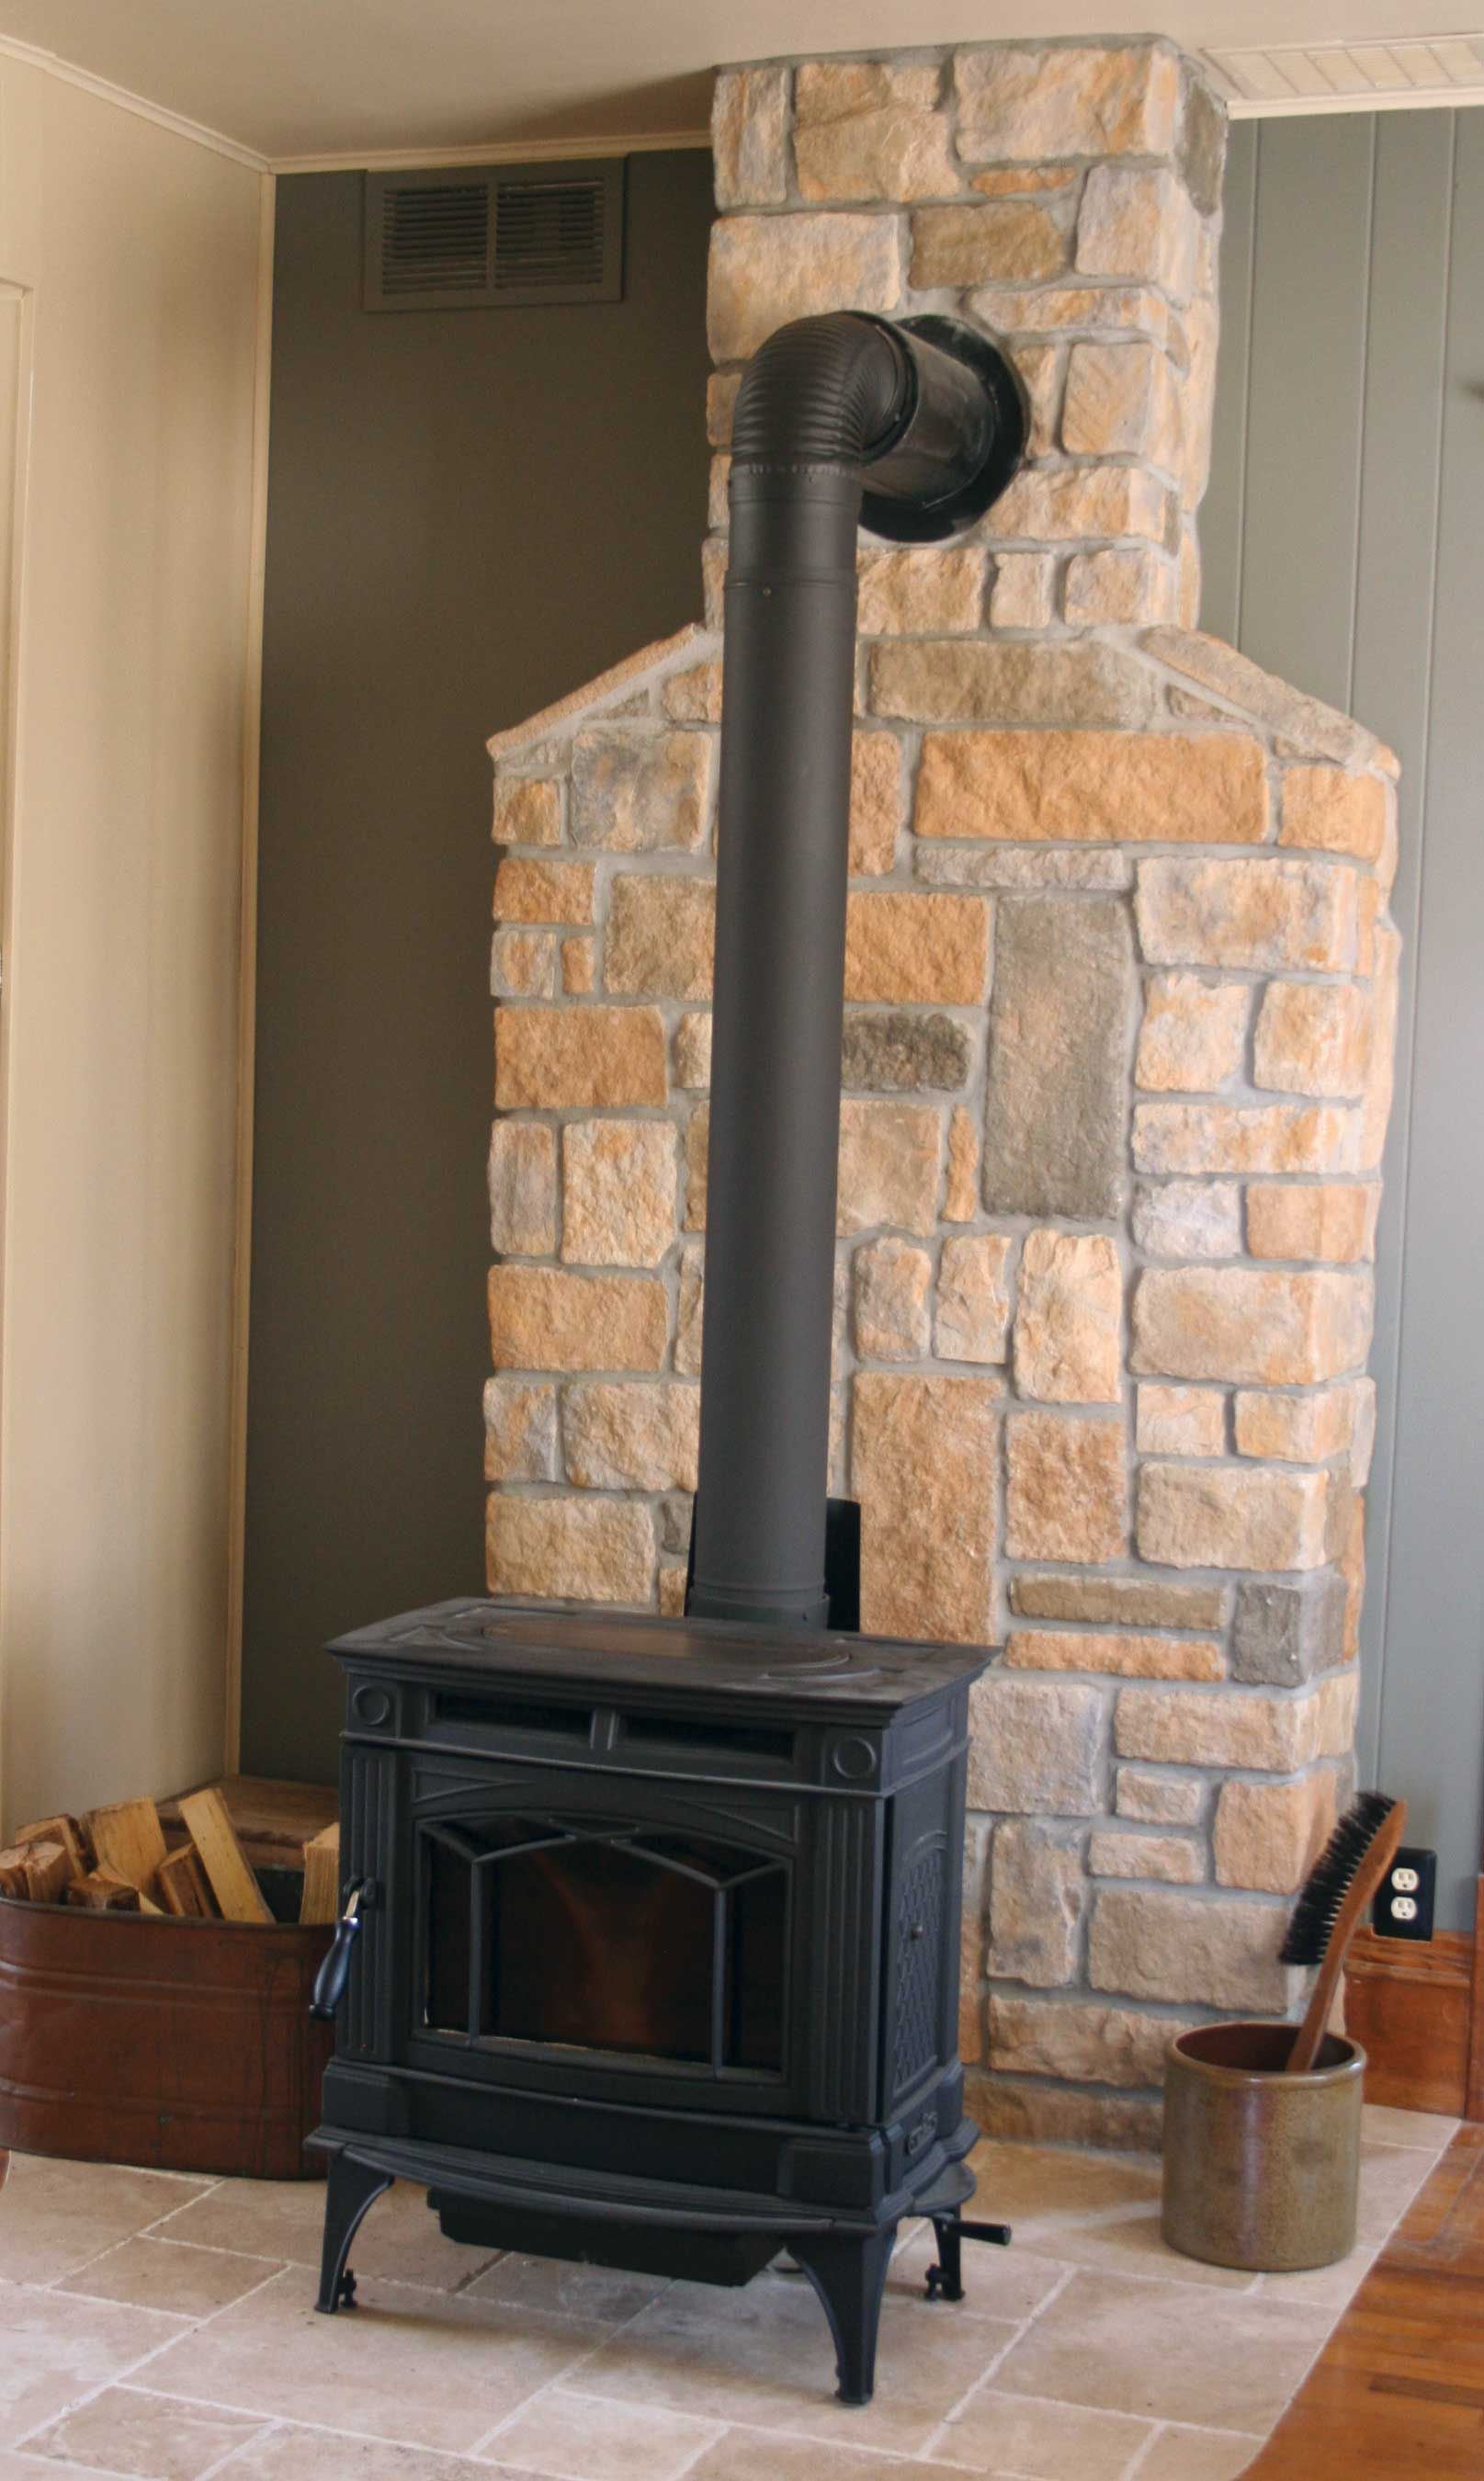 Choosing a Wood-Burning Stove for Your Home | Wood burning ...